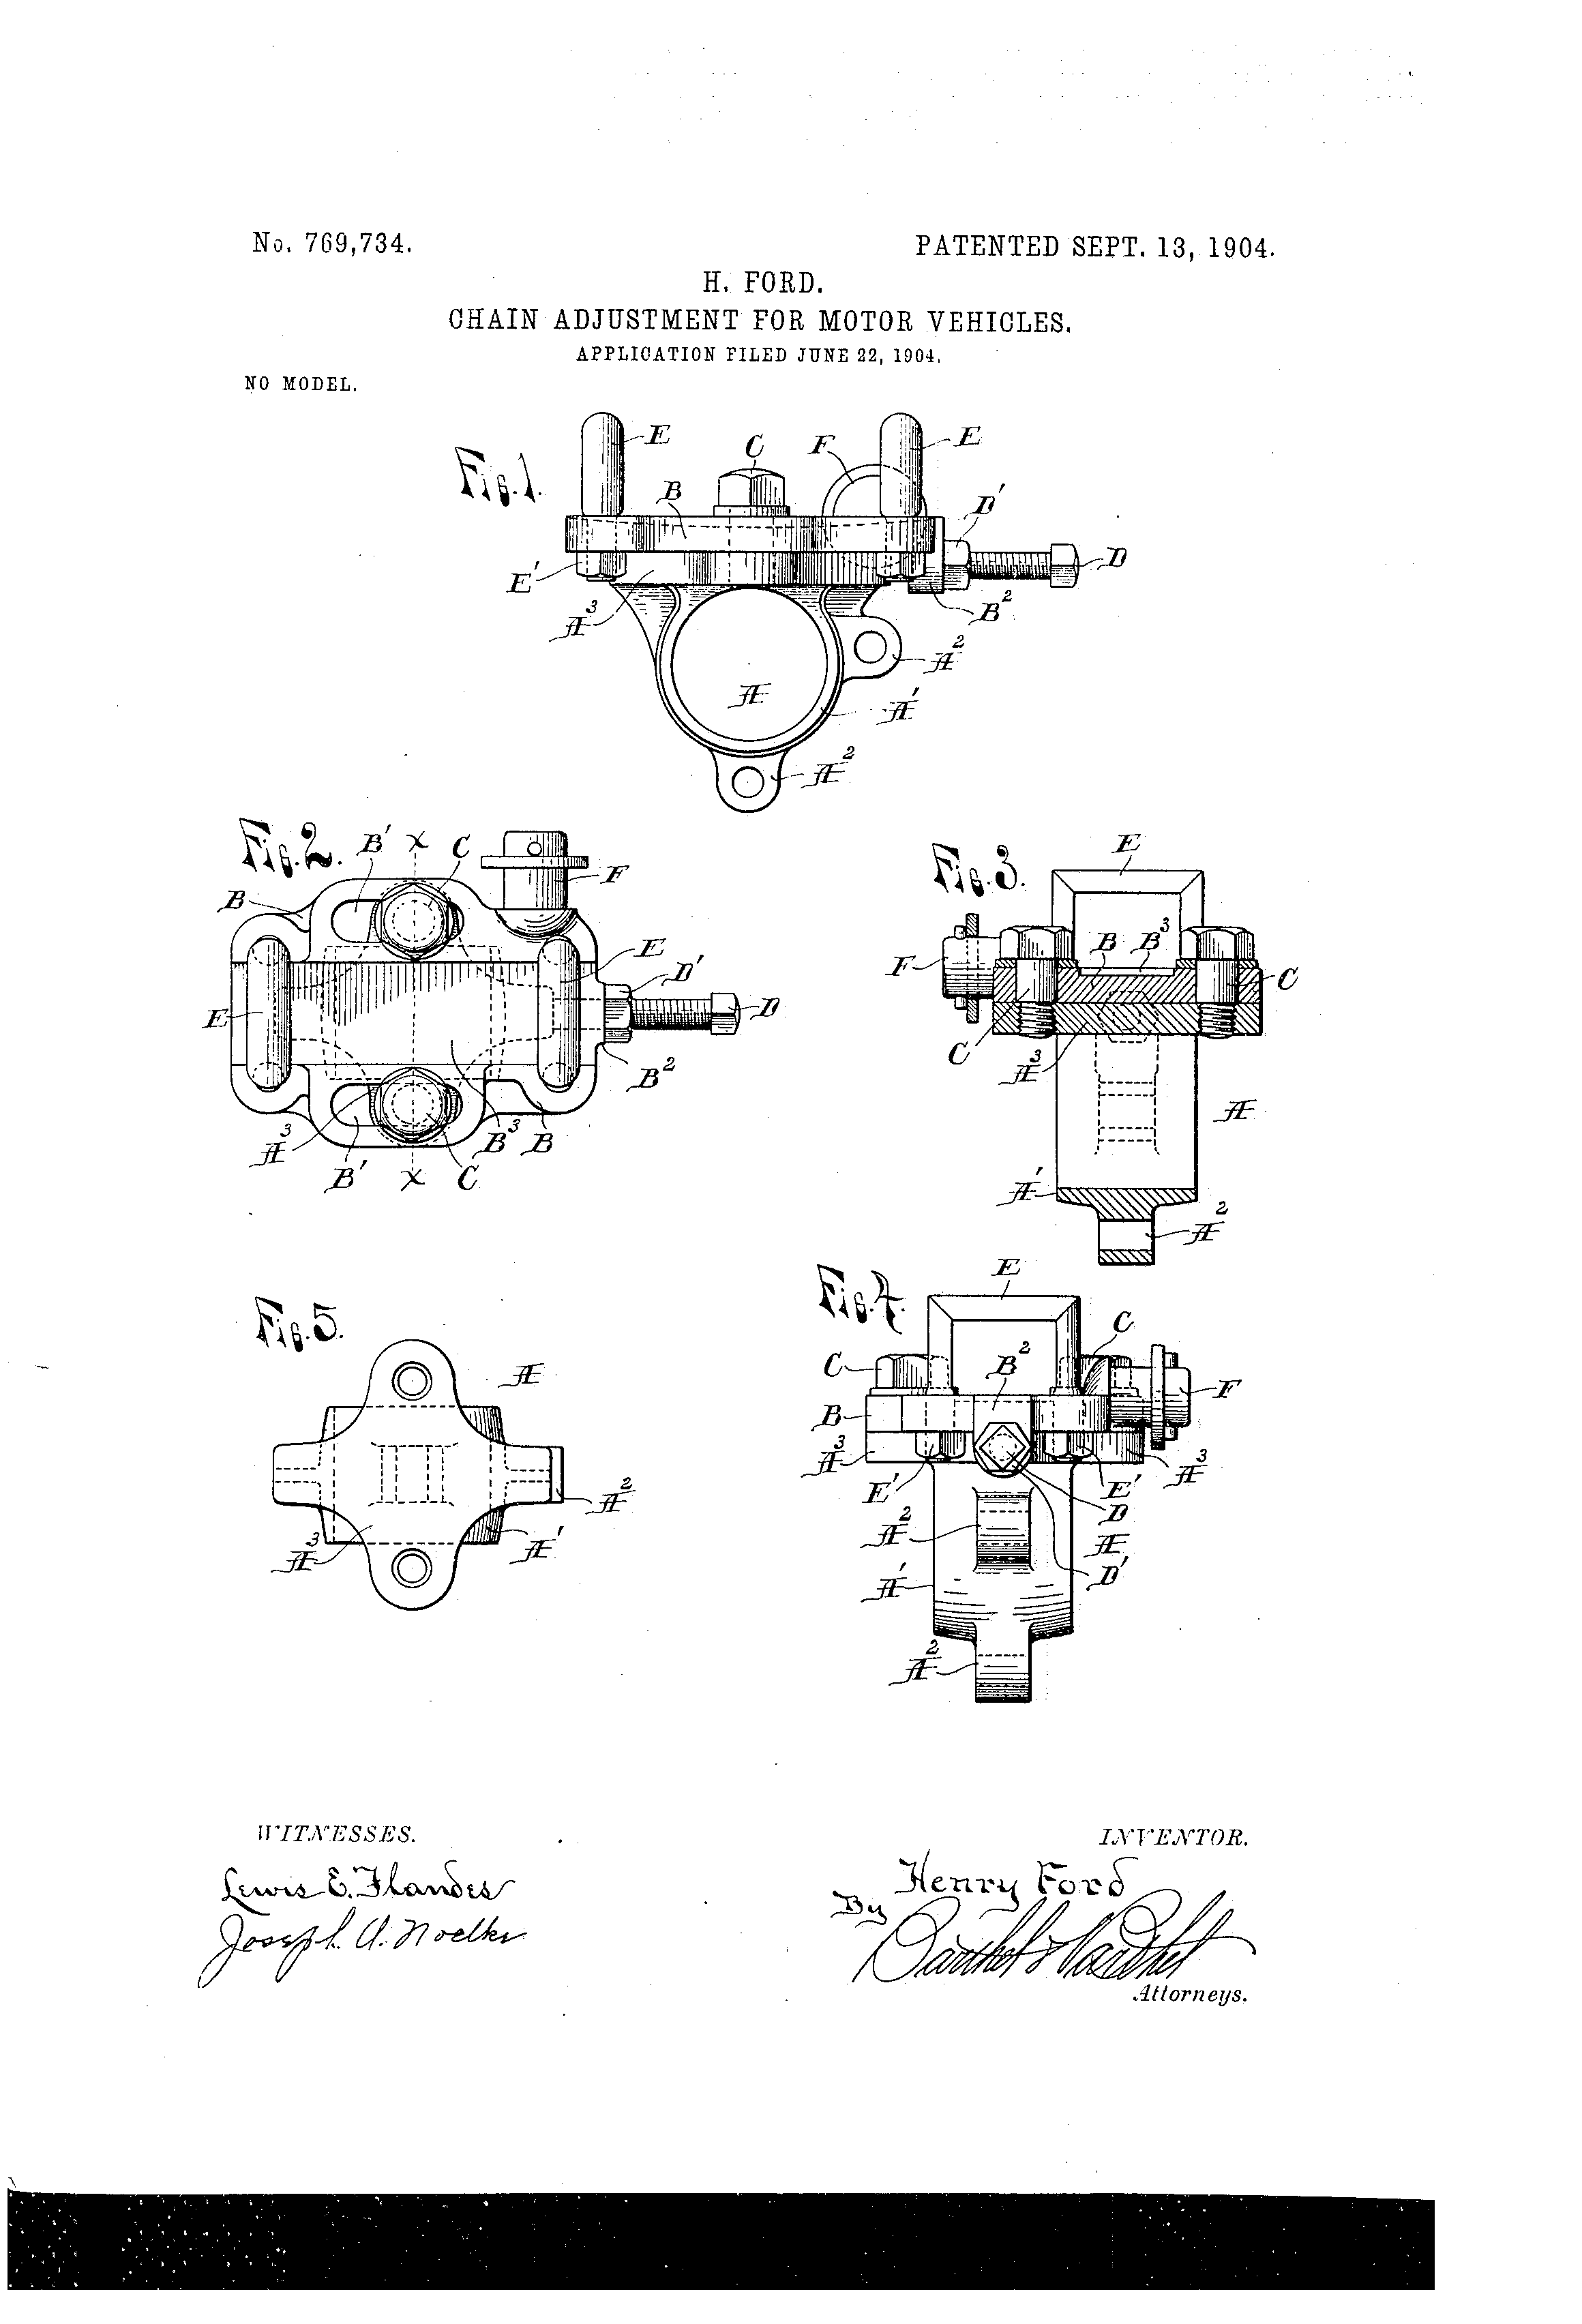 Henry Ford Random Patents #7